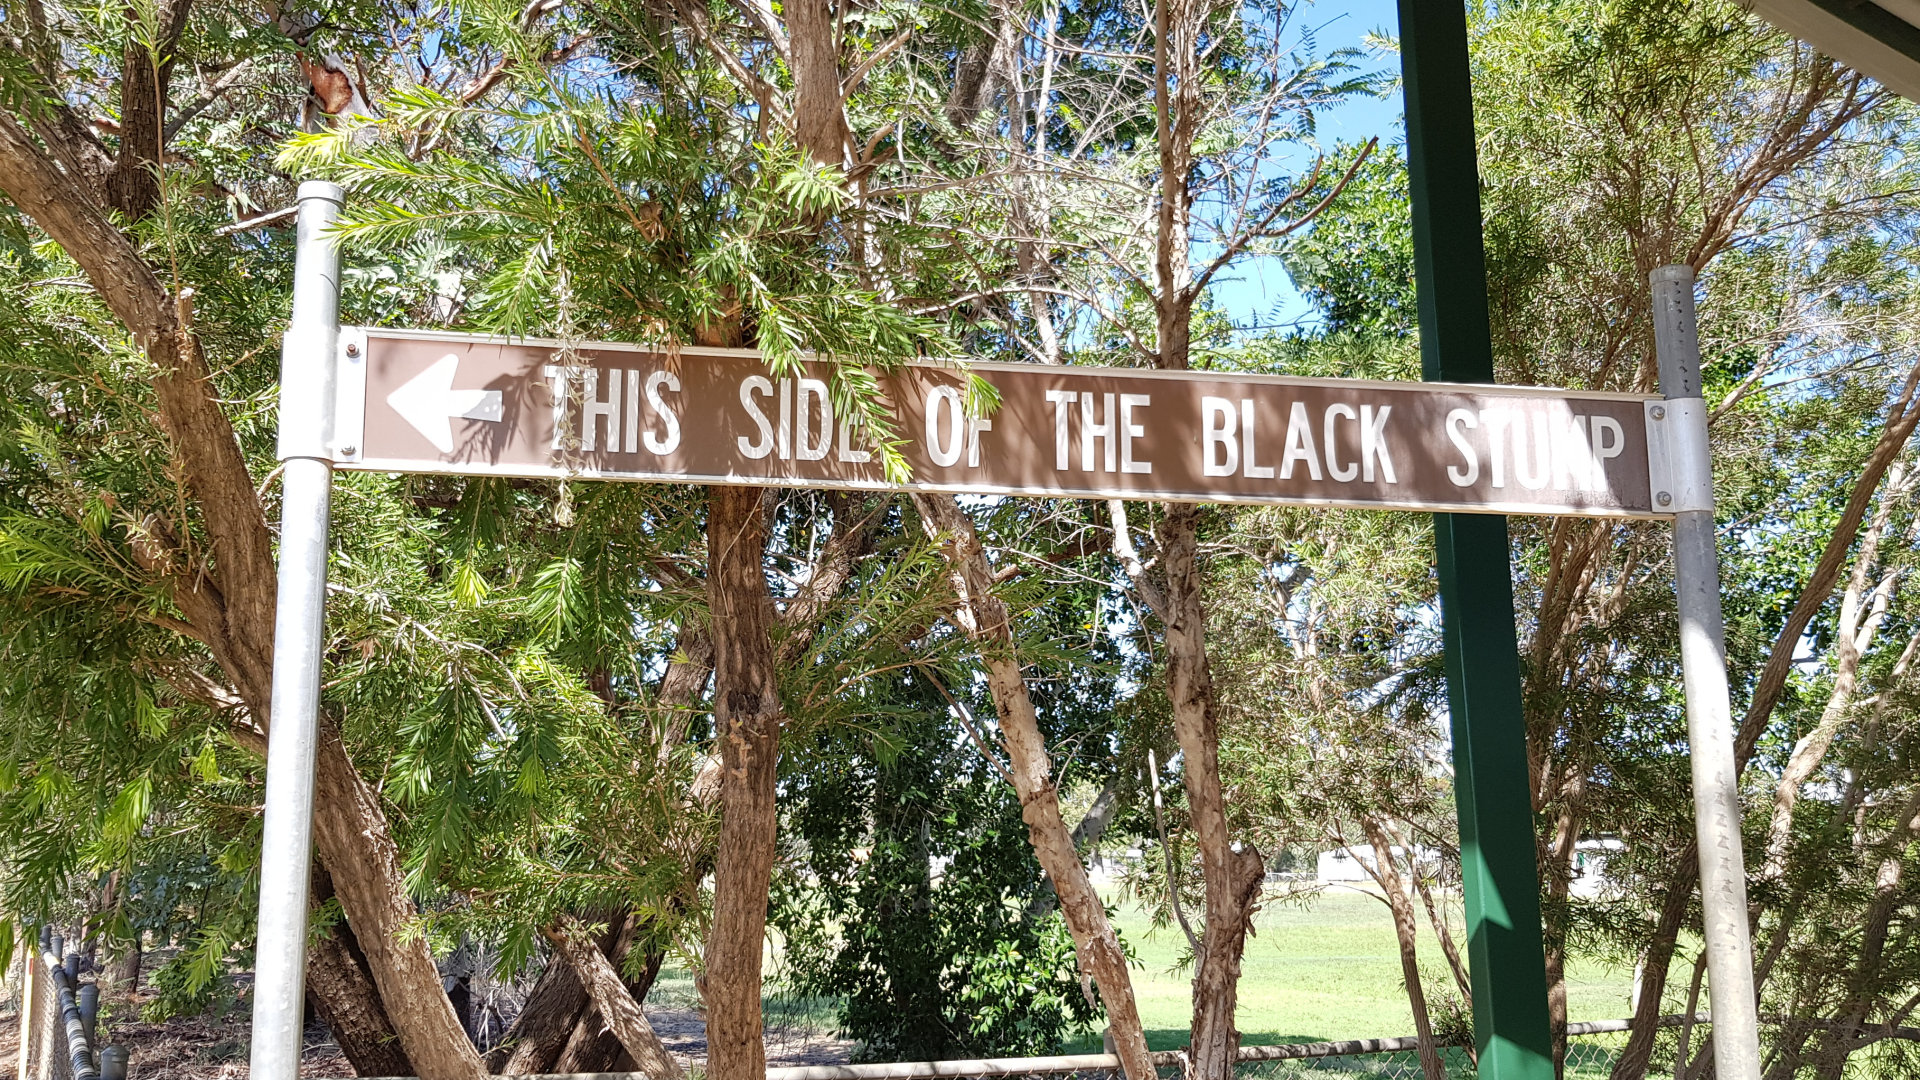 "Brown sign of ""This Side of the Black Stump"" in Blackall. It is used to convey a perceived eastern border in Australia for where civilisation is contained. The Black Stump monument in Blackall has the brown tourist sign to define the location of the border."